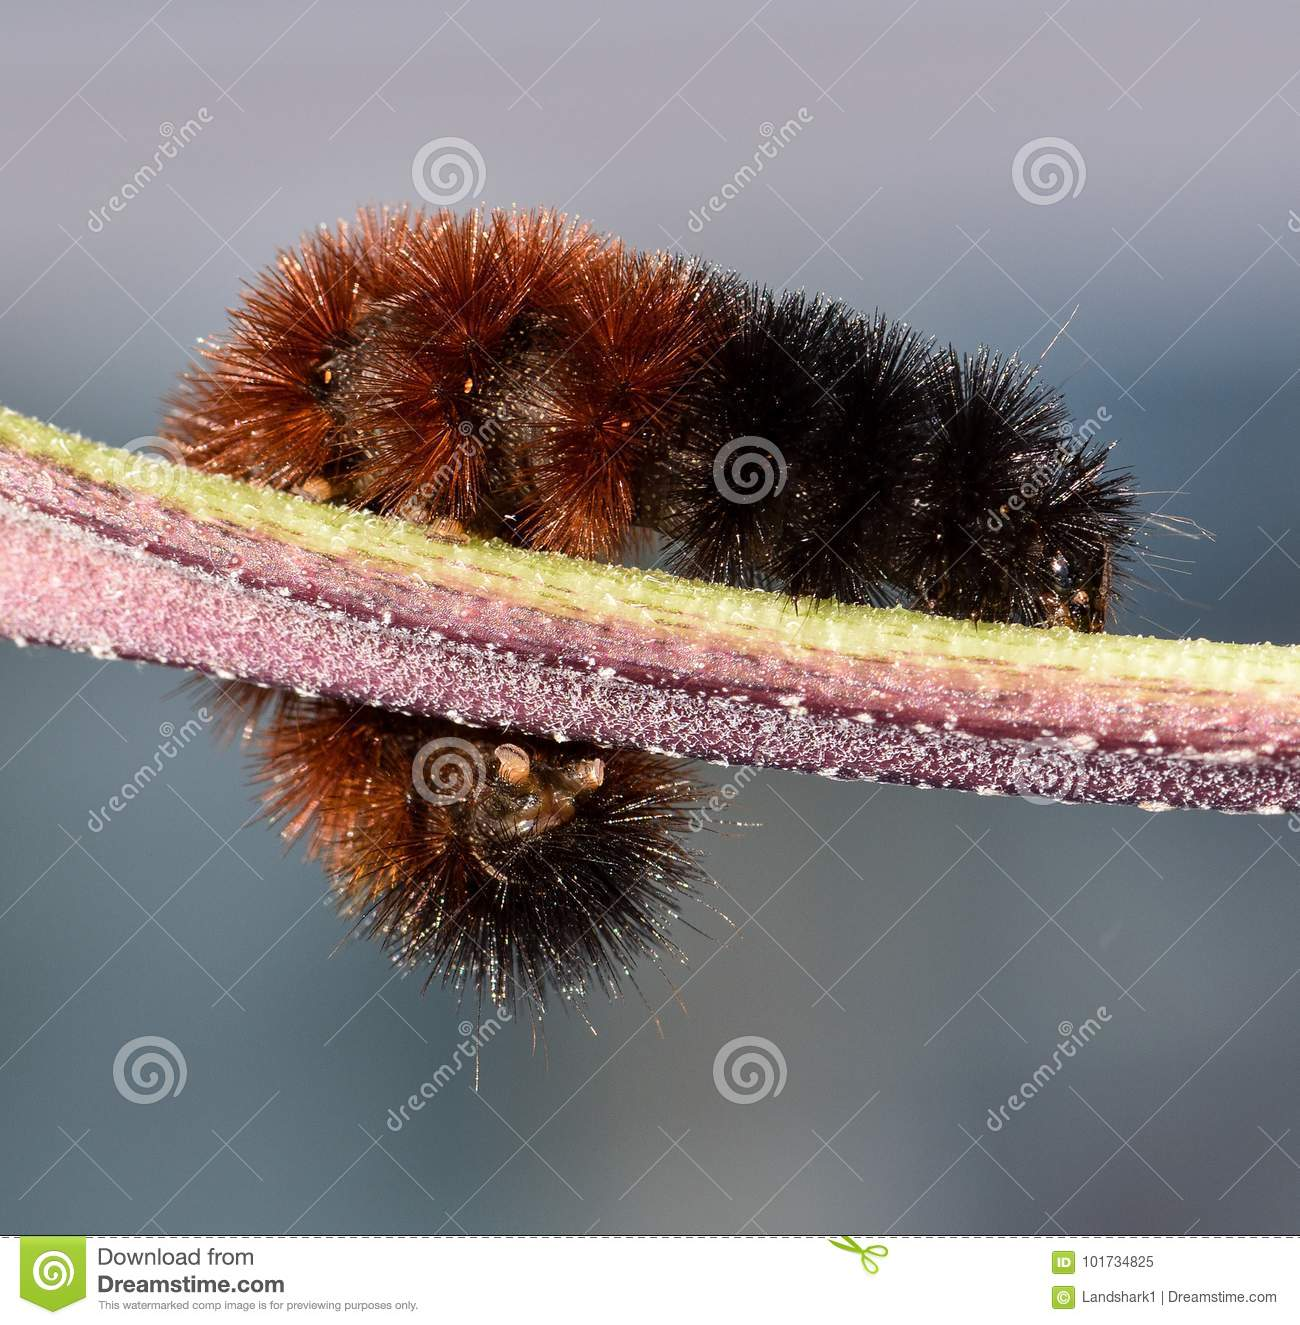 All Black Woolly Bear Caterpillars: Woolly Bear Caterpillar Crawling On A Stem. Stock Image